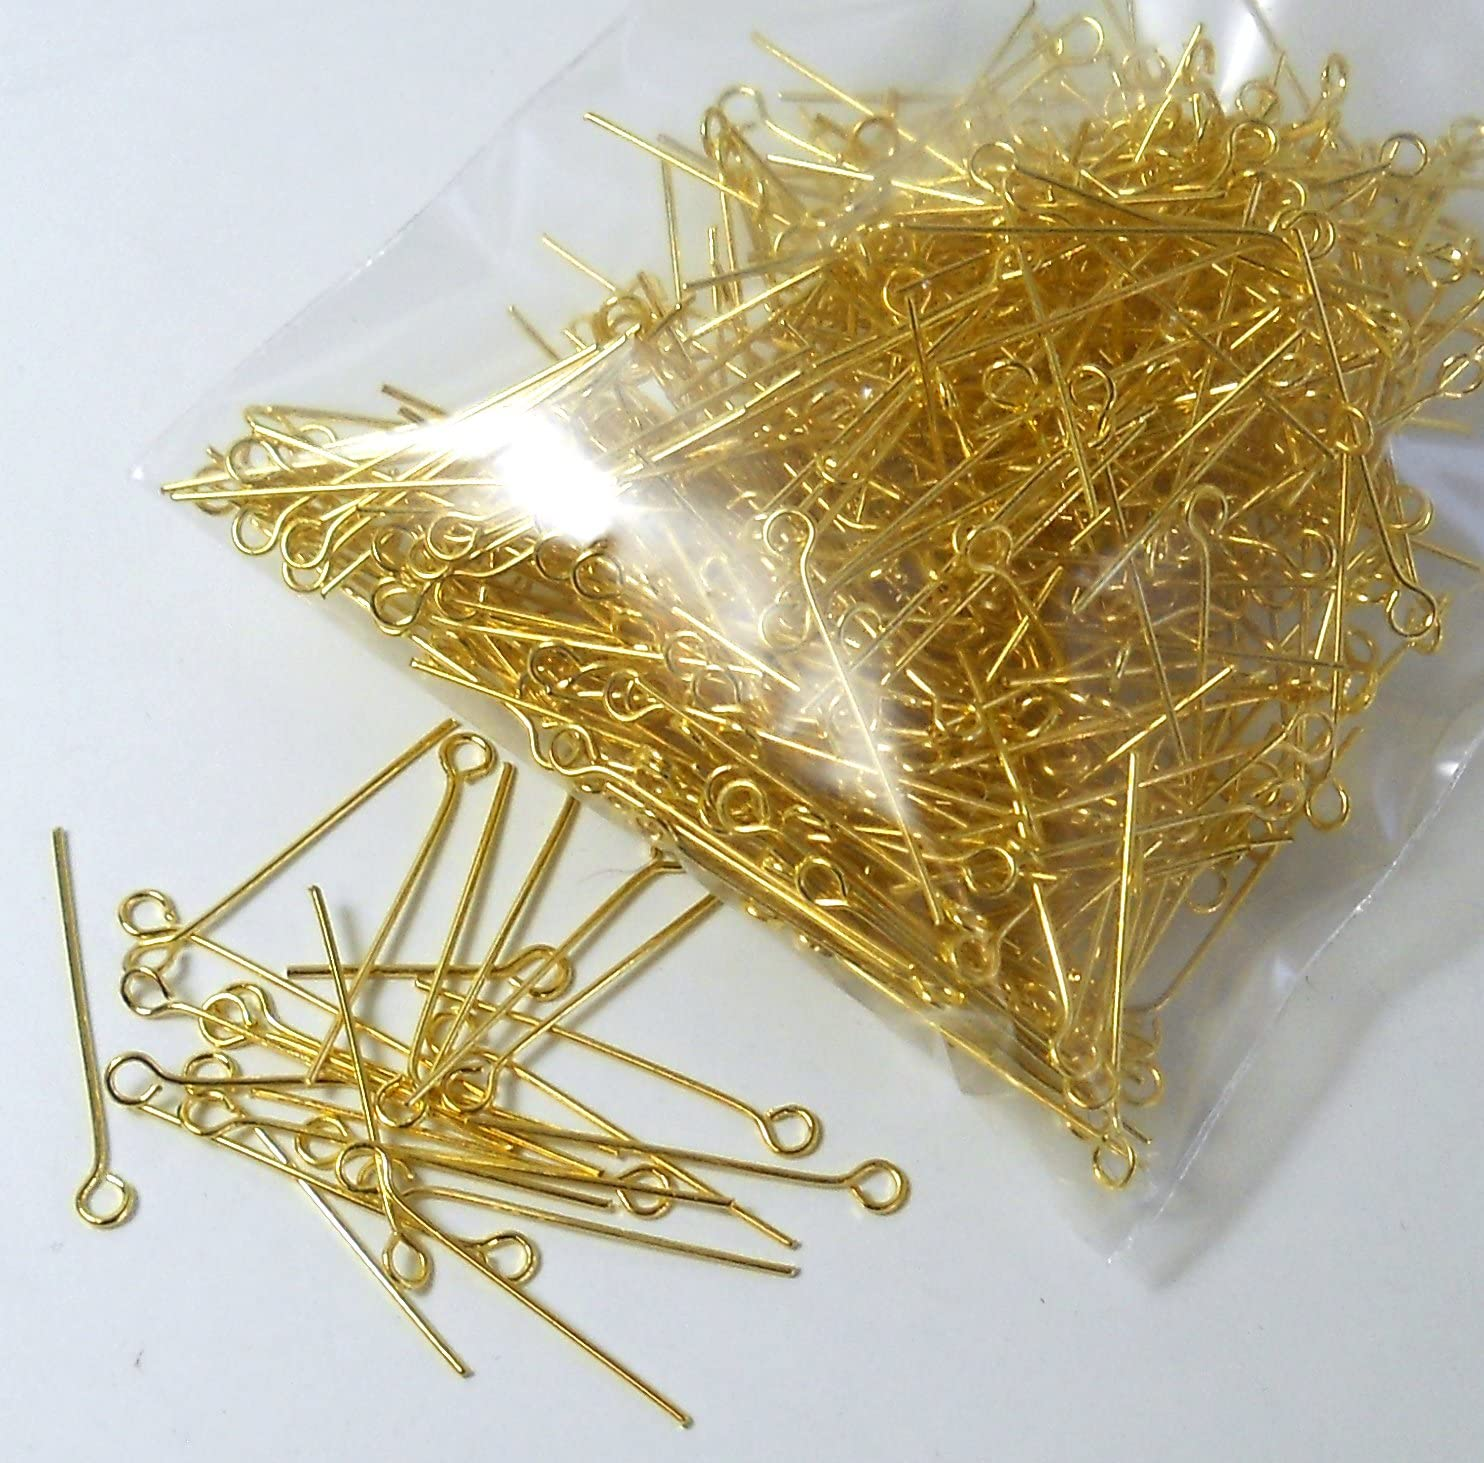 24 guage 45mm EYEPIN-GLD-0.5-45MM 50 pcs Gold Plated Brass Eyepins 1.75 inches